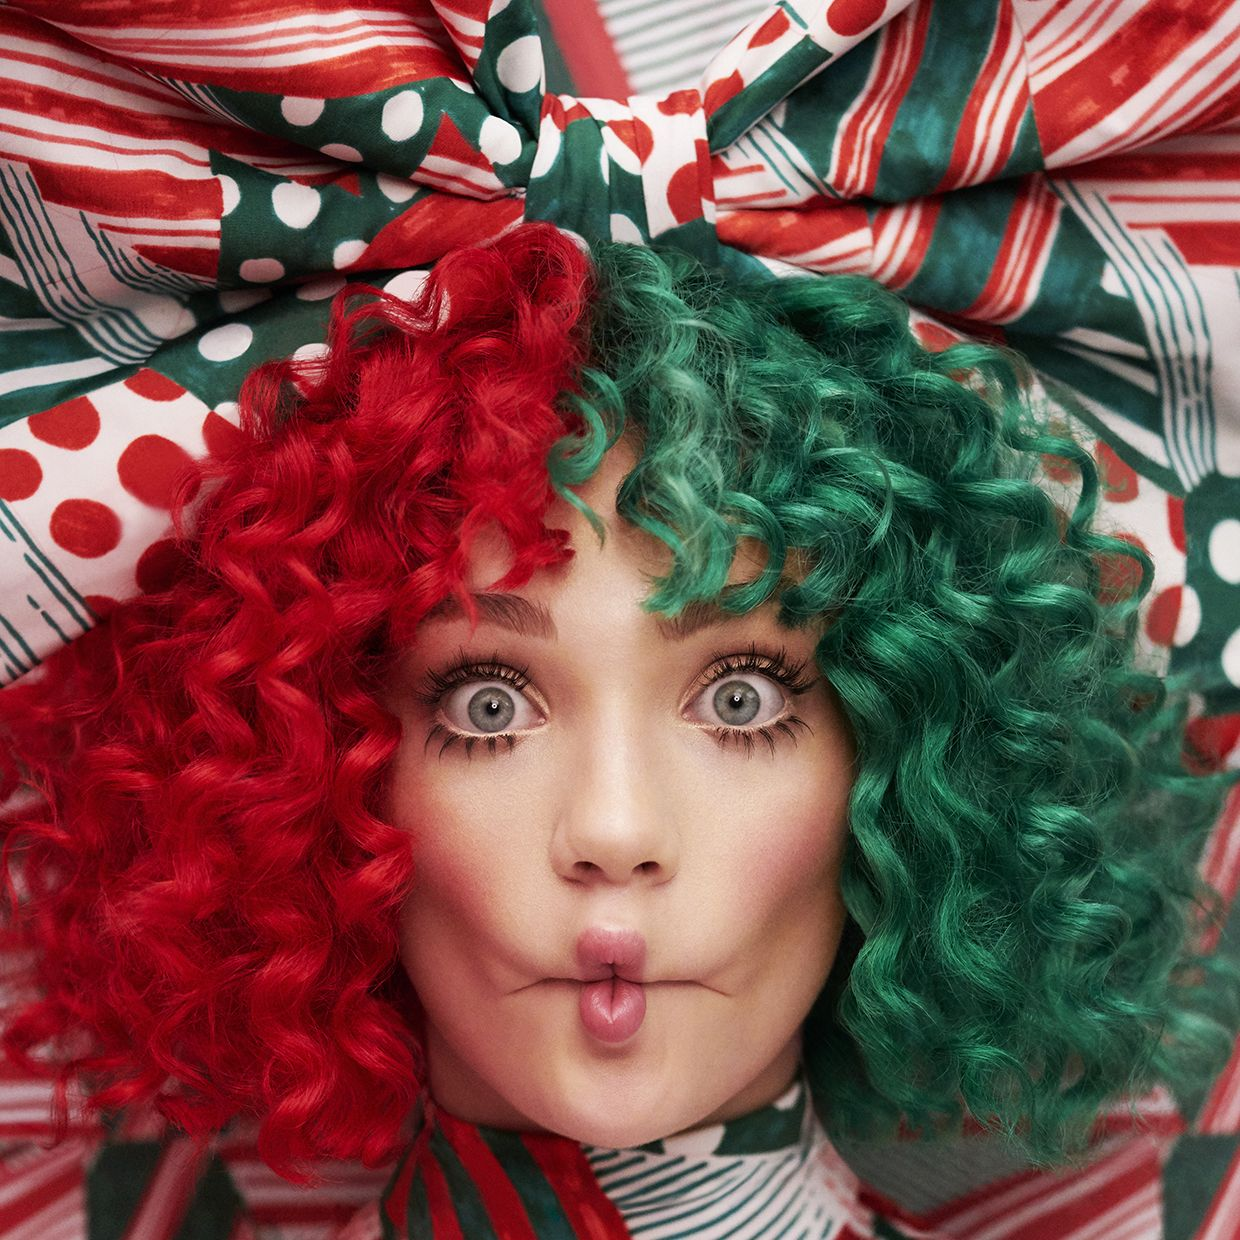 Sia Reveals 'Everyday Is Christmas' Cover, Track List